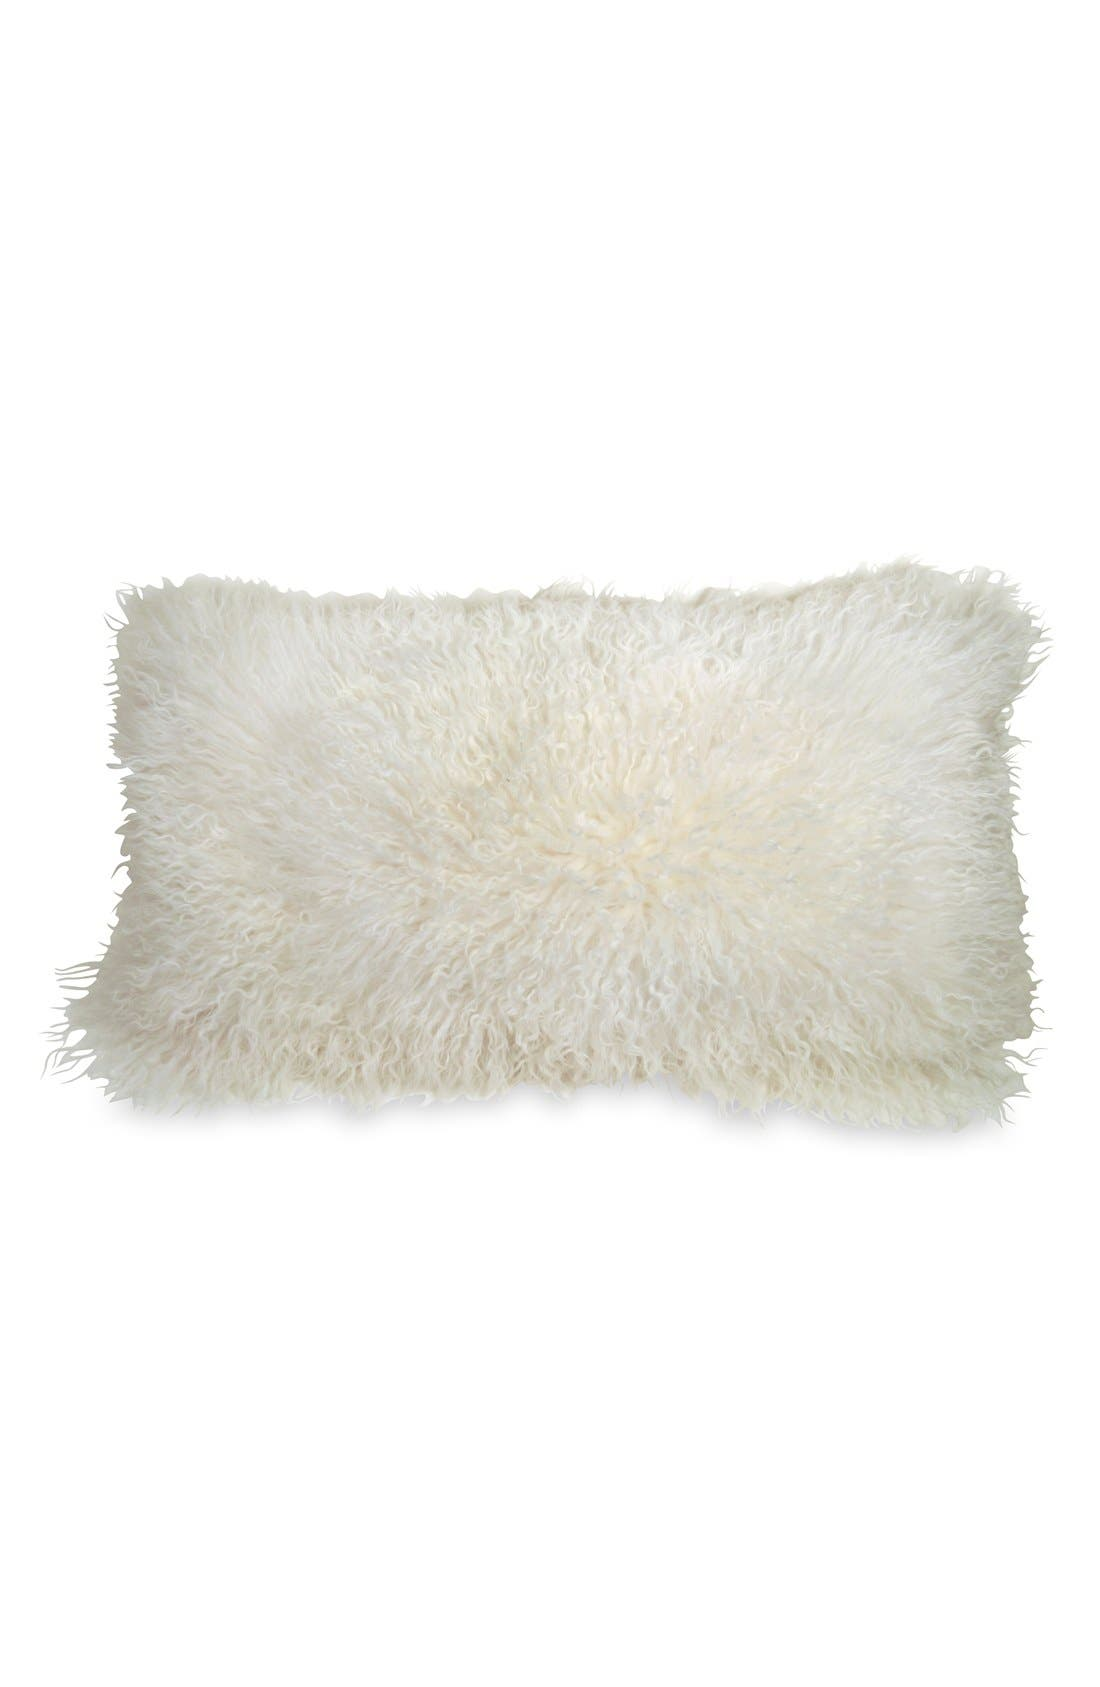 Donna Karan Collection Moonscape Flokati Genuine Sheepskin Pillow,                         Main,                         color, 900